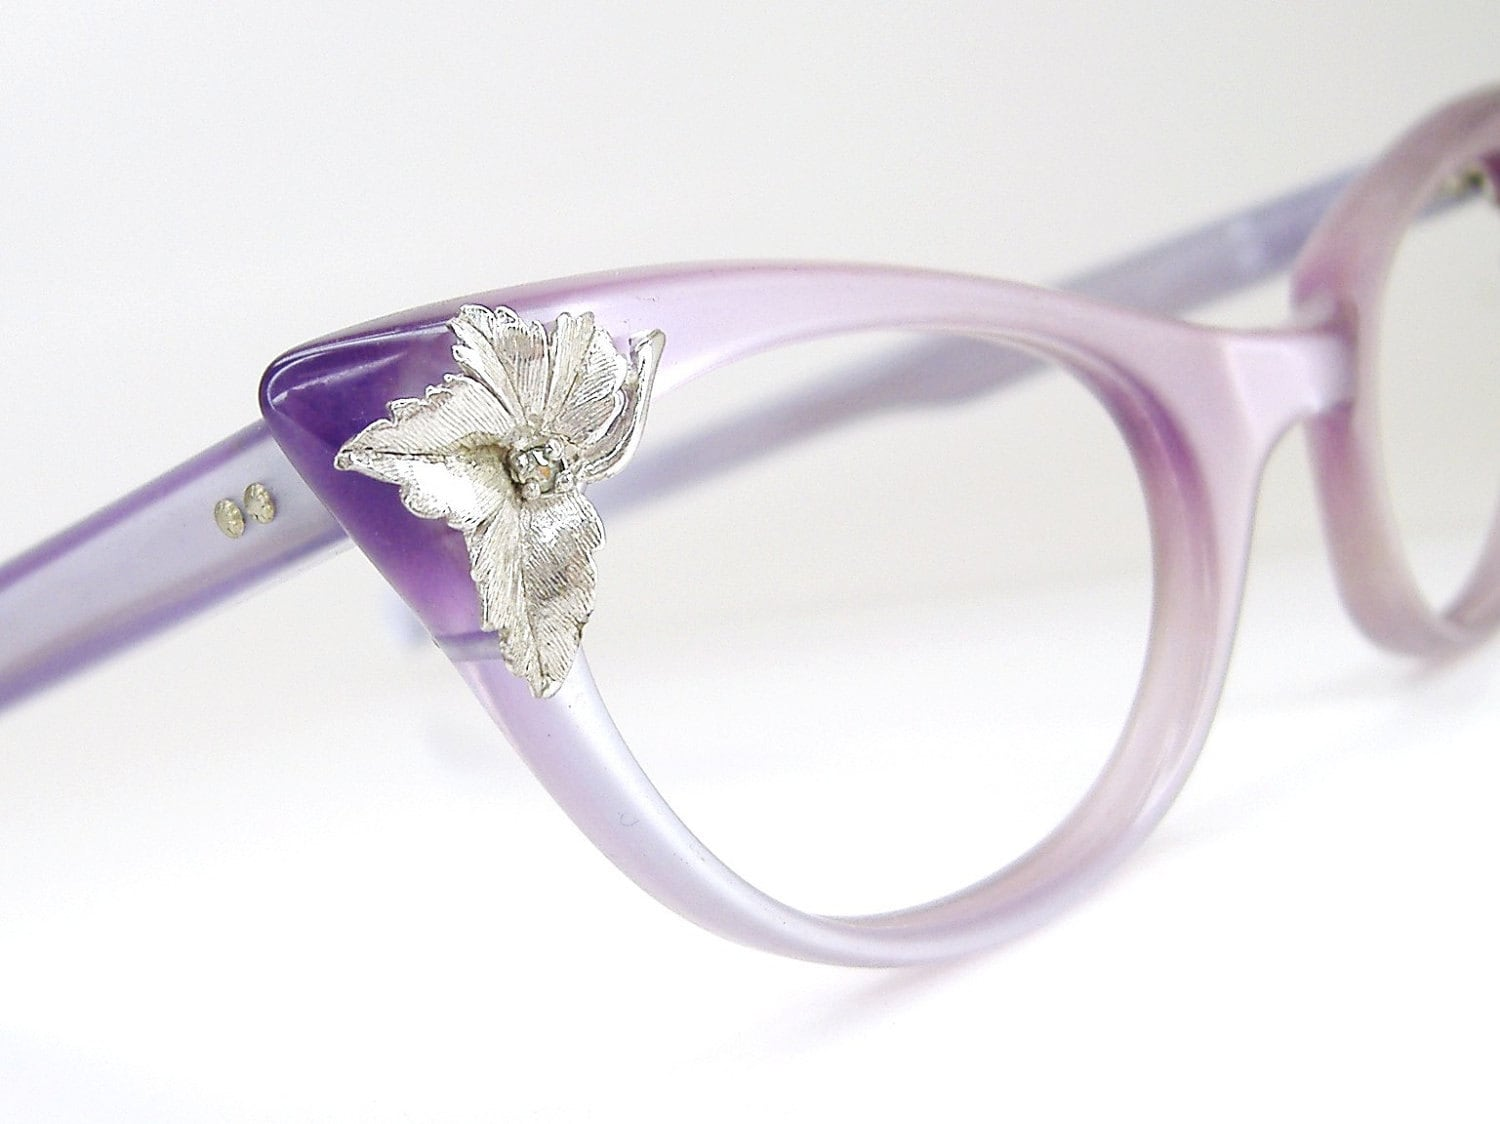 Vintage Glasses Frames Cat Eye : Vintage 50s Cat Eye Glasses Eyeglasses Purple Iridescent Frame